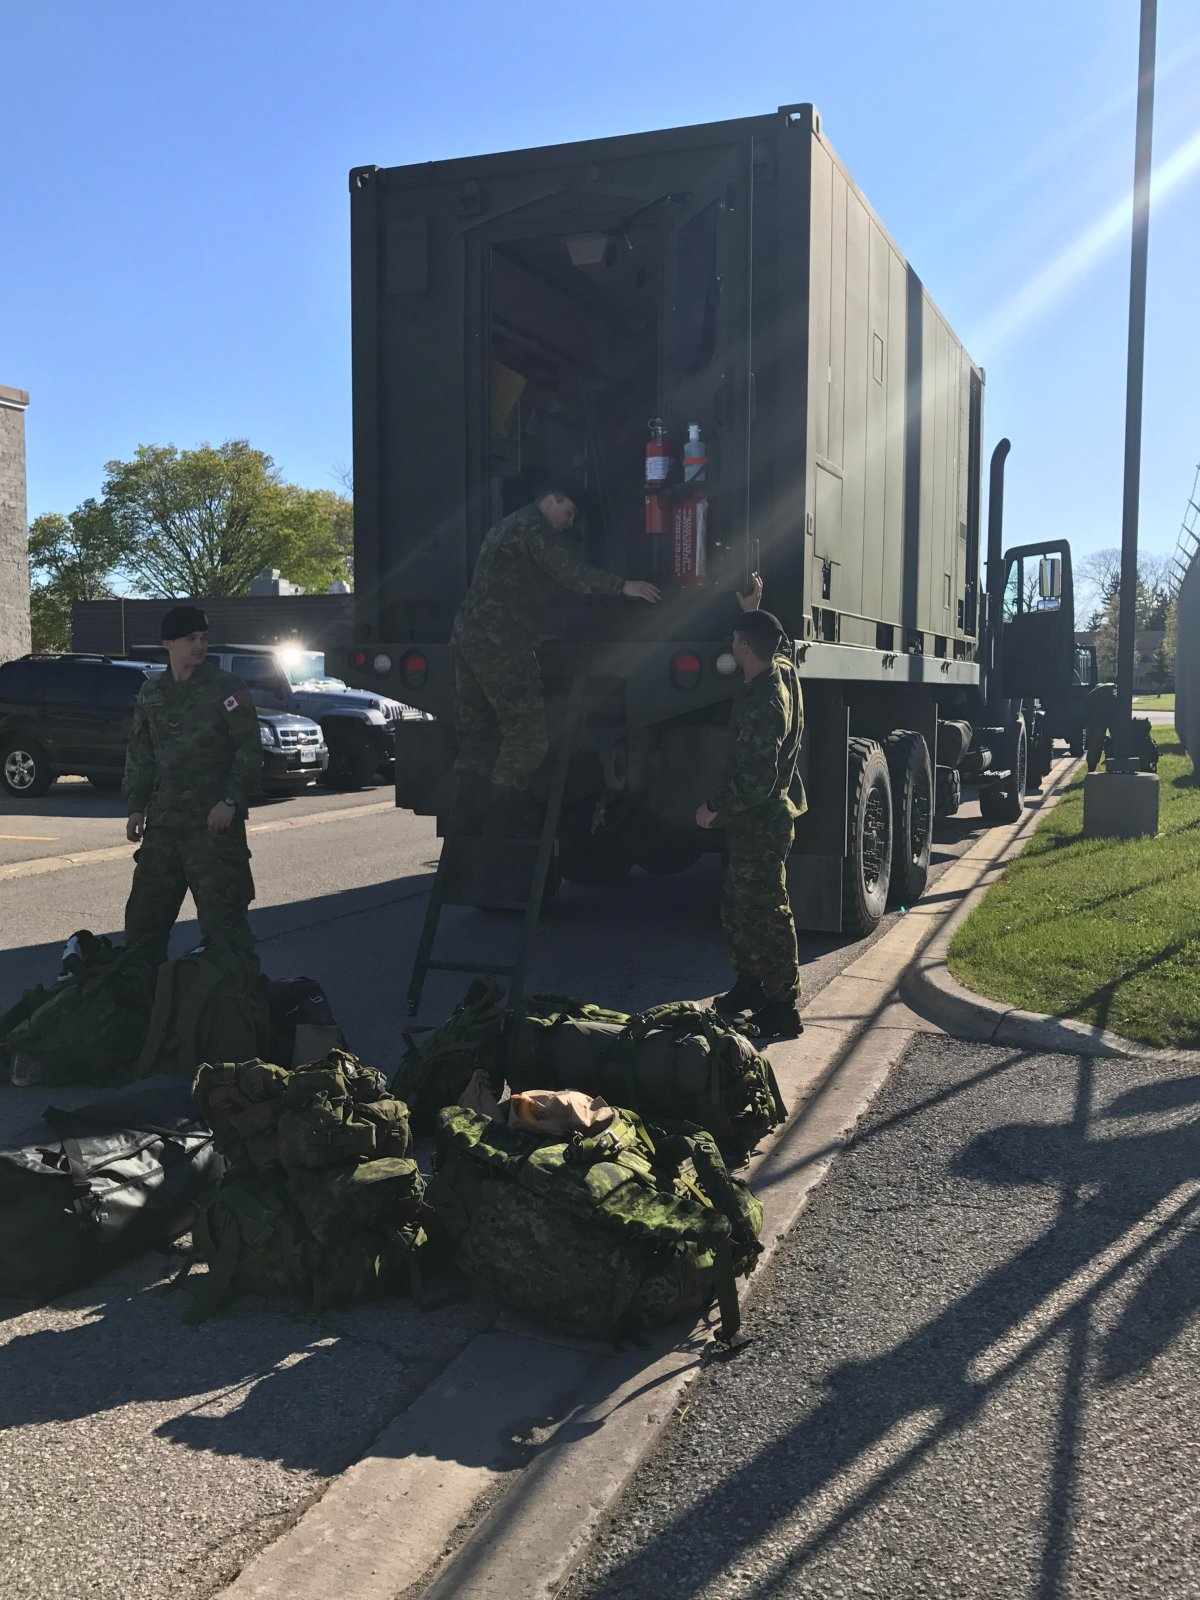 Reservists from 31 Canadian Brigade Group load and marshal vehicles in at Wolseley Barracks, London, in preparation of their move to Kingston, where they will be prepared to support in flood relief when they receive the request for assistance, on 8 May 2017.